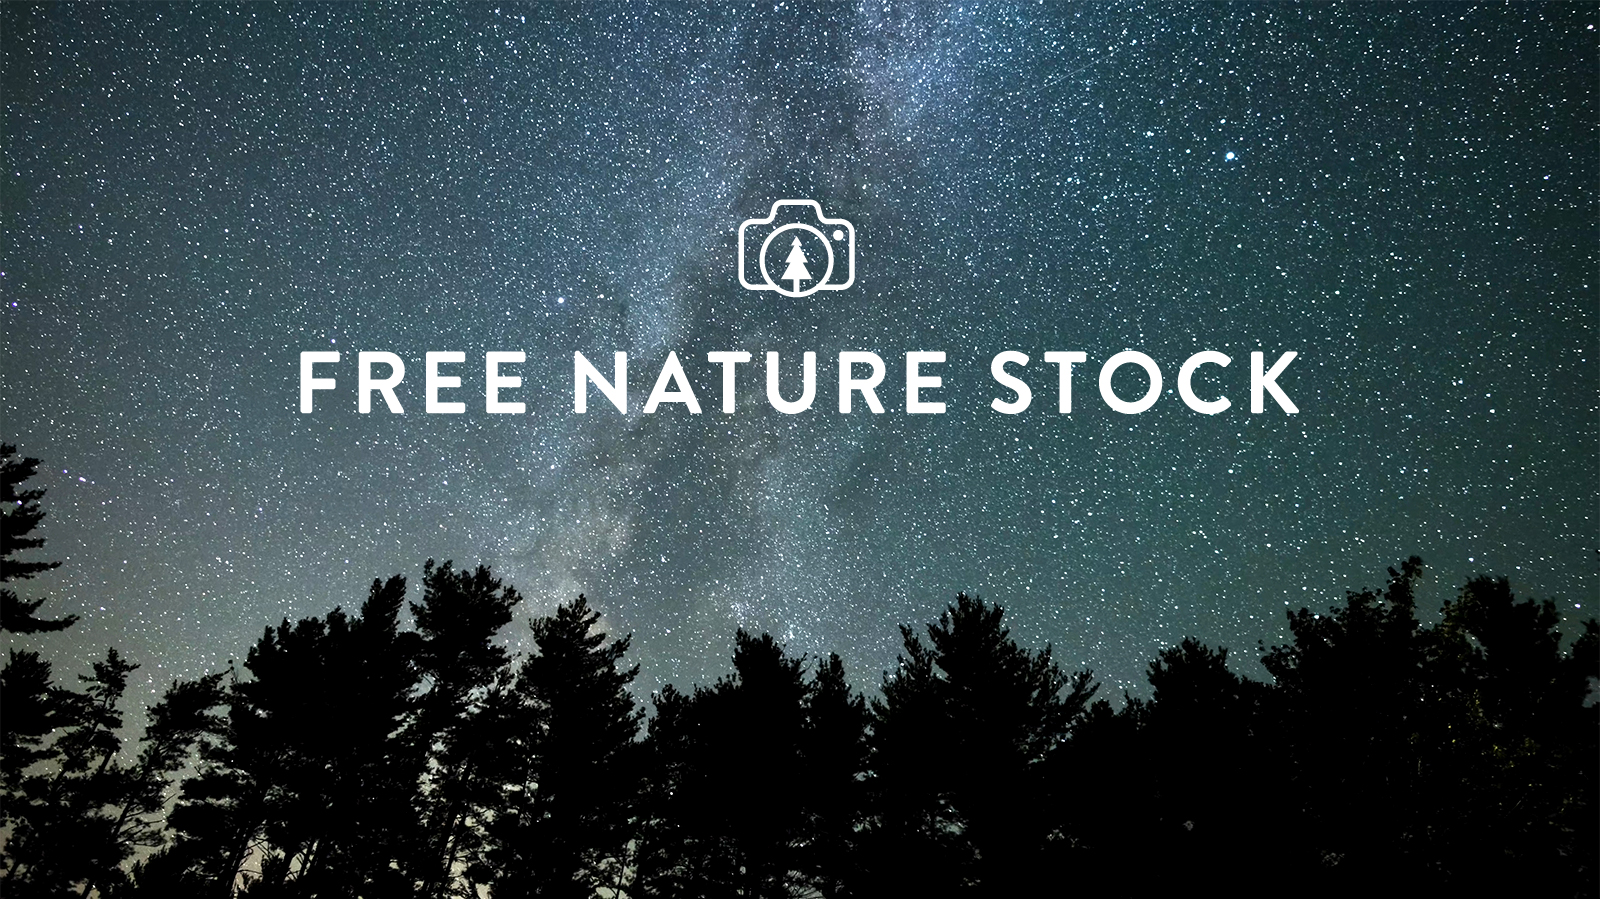 Free Nature Stock Videos website for free stock videos of landscapes and natural scenes.